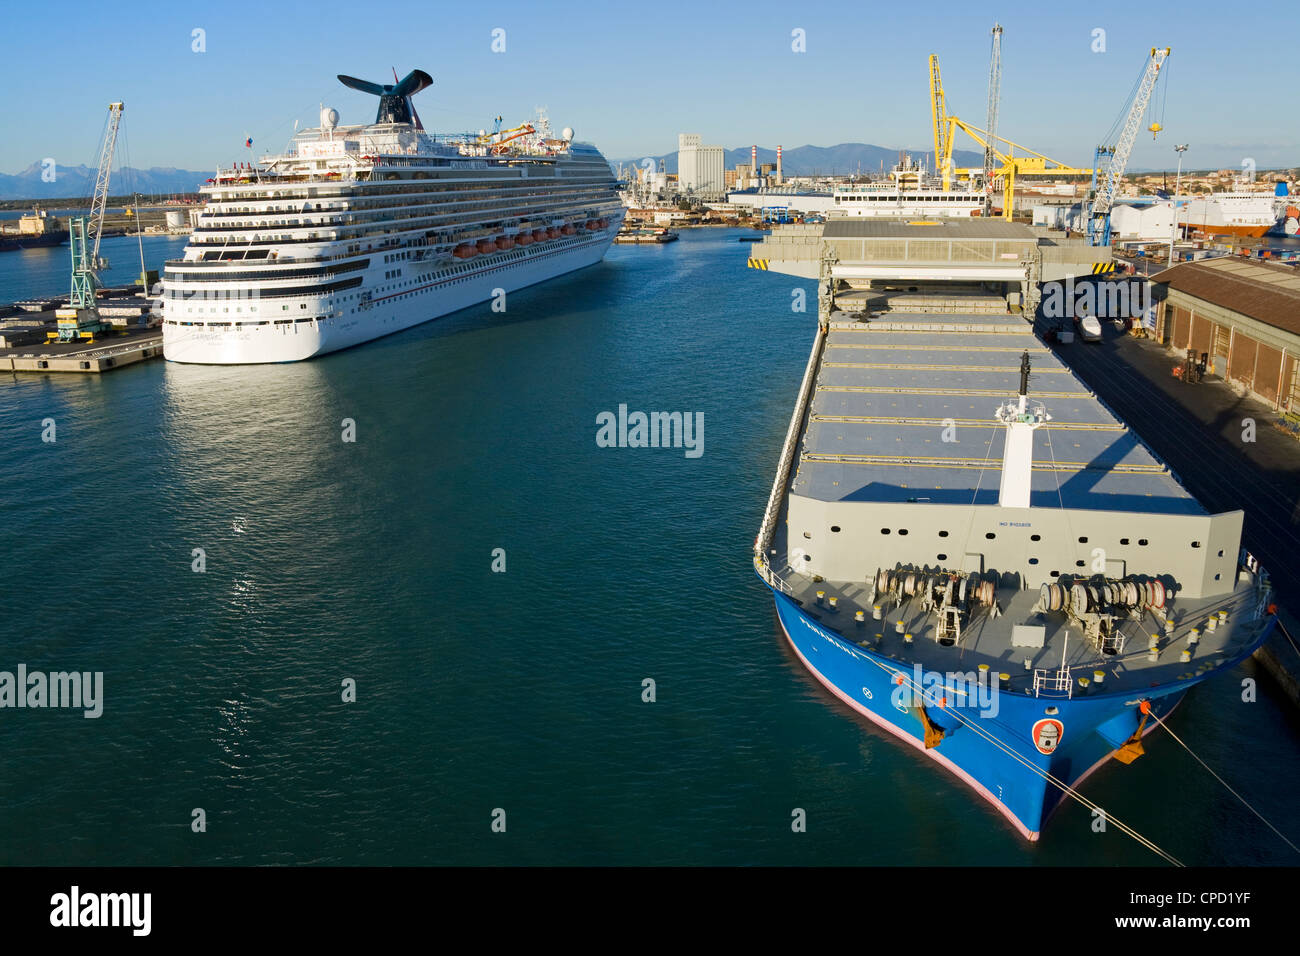 Cargo and cruise ship in the Port of Livorno, Tuscany, Italy, Europe - Stock Image